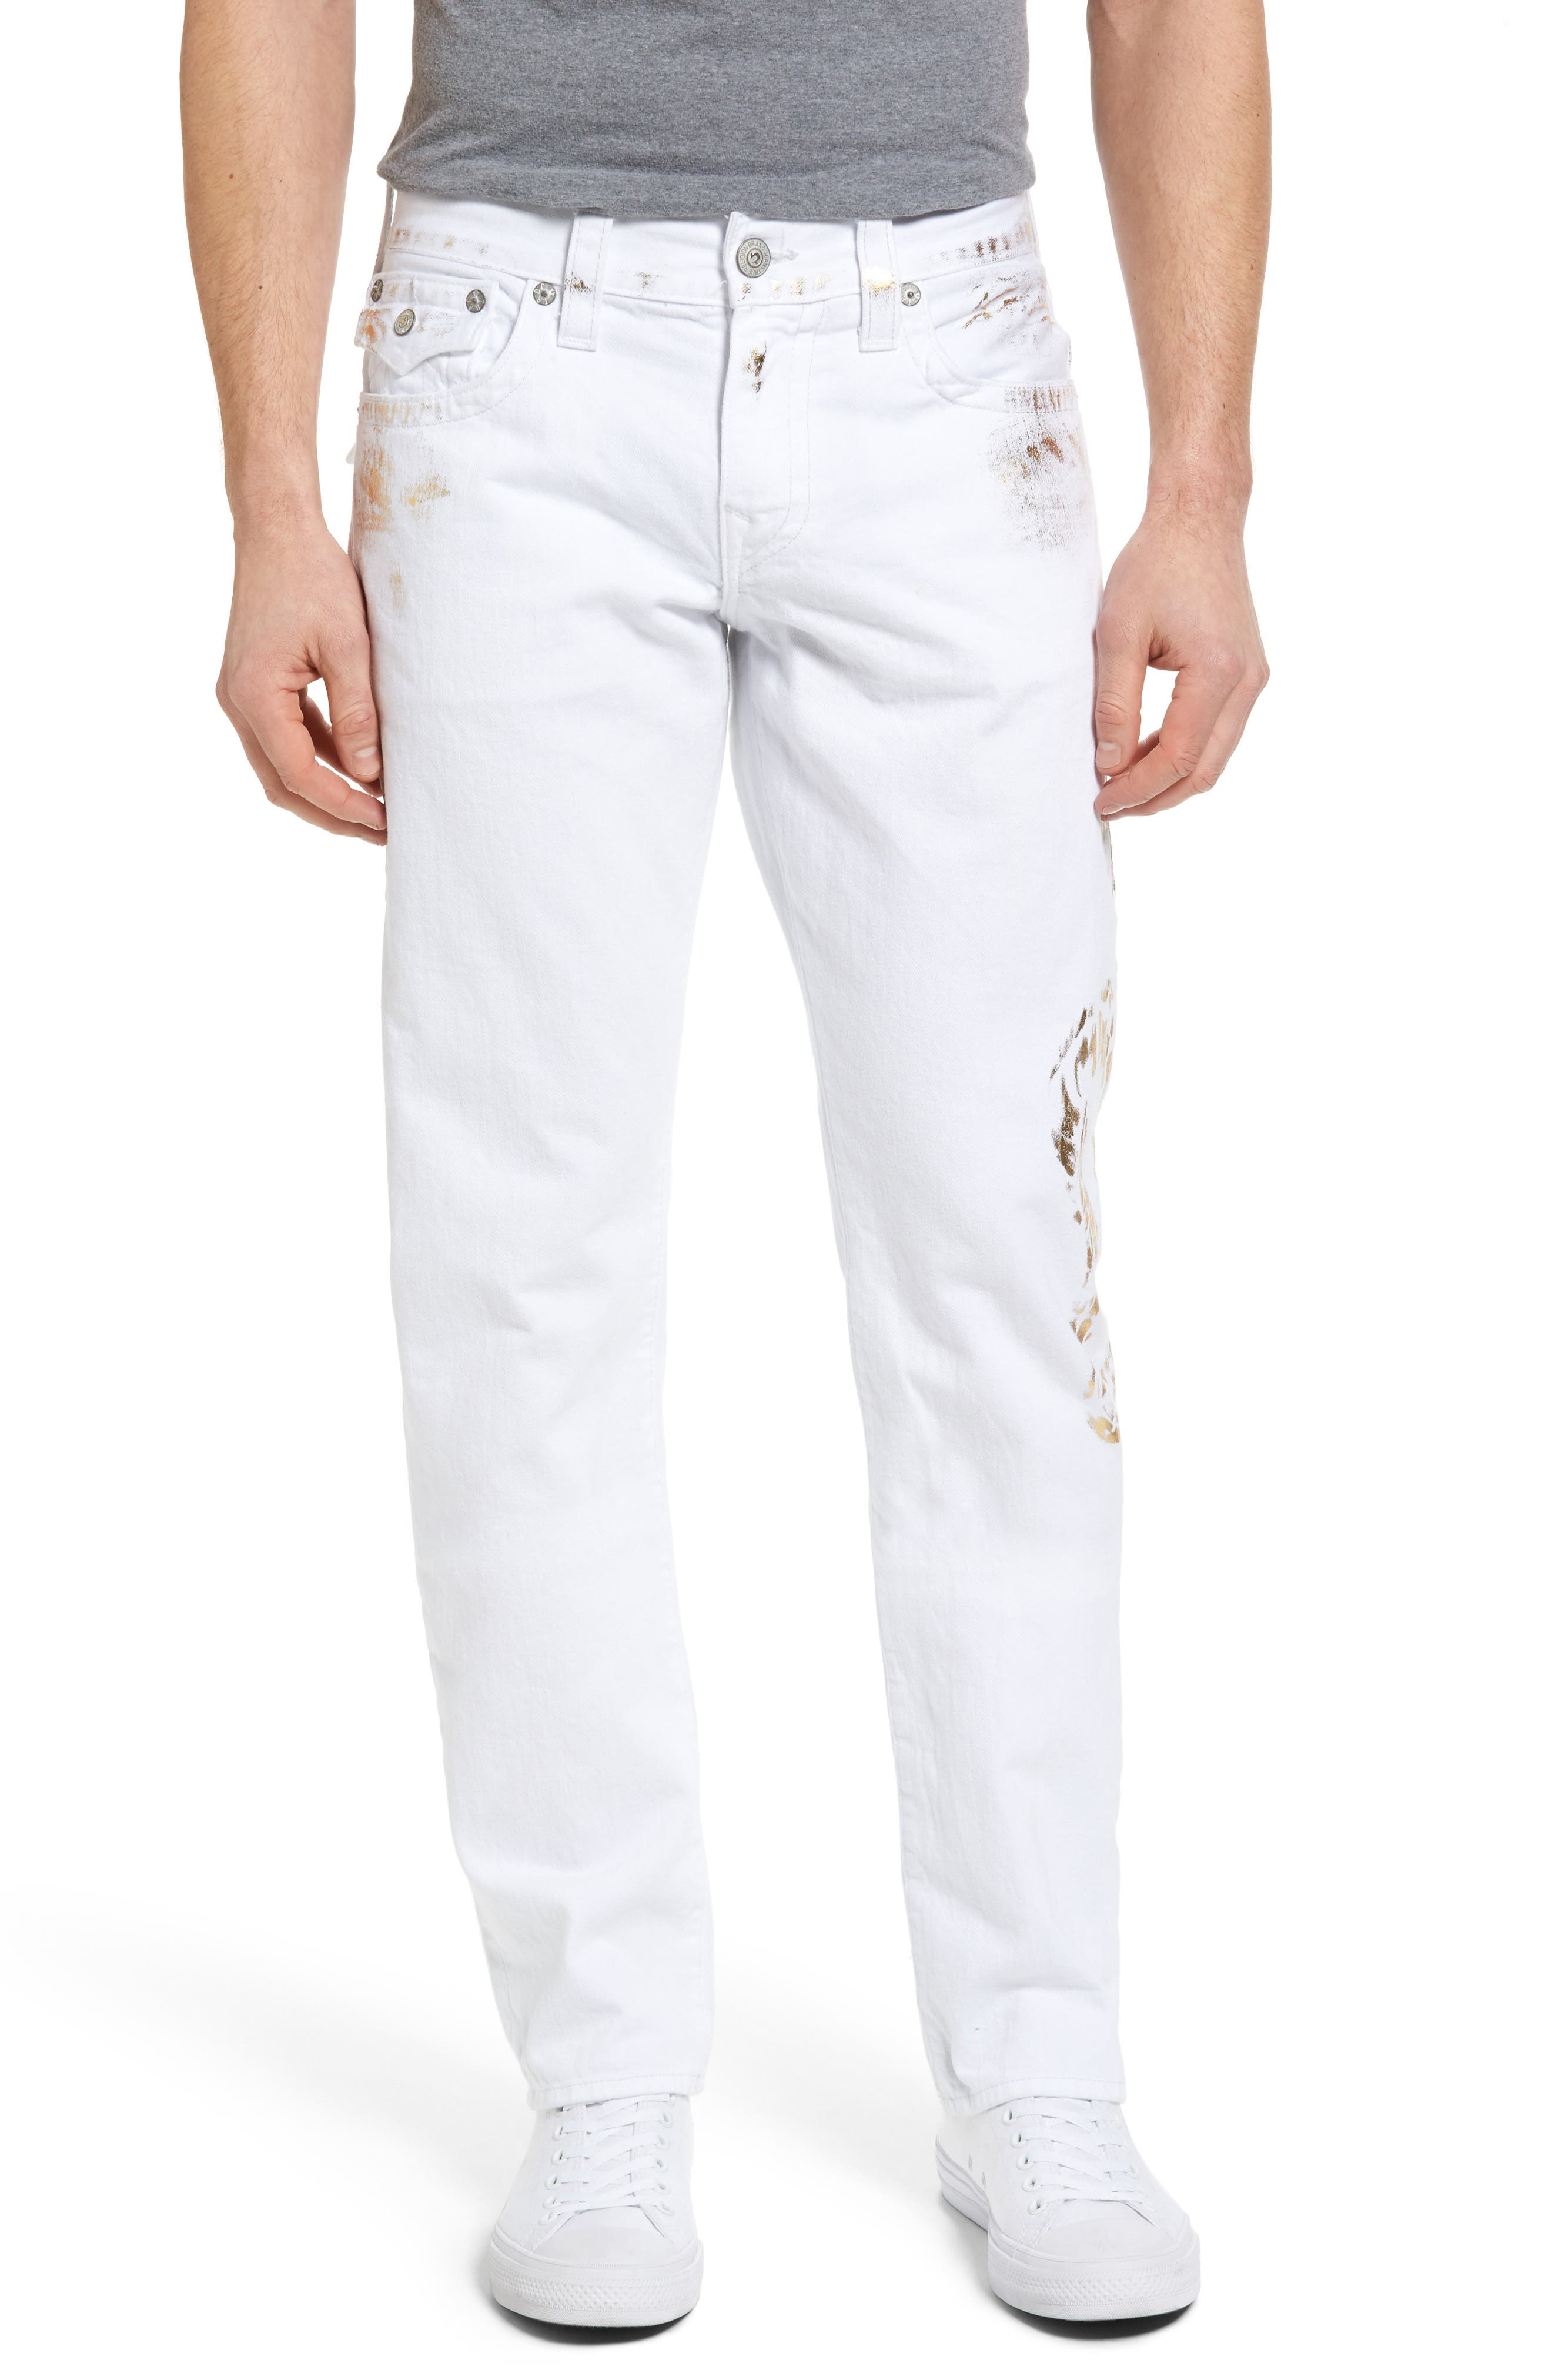 Ricky Relaxed Fit Jeans,                             Main thumbnail 1, color,                             101